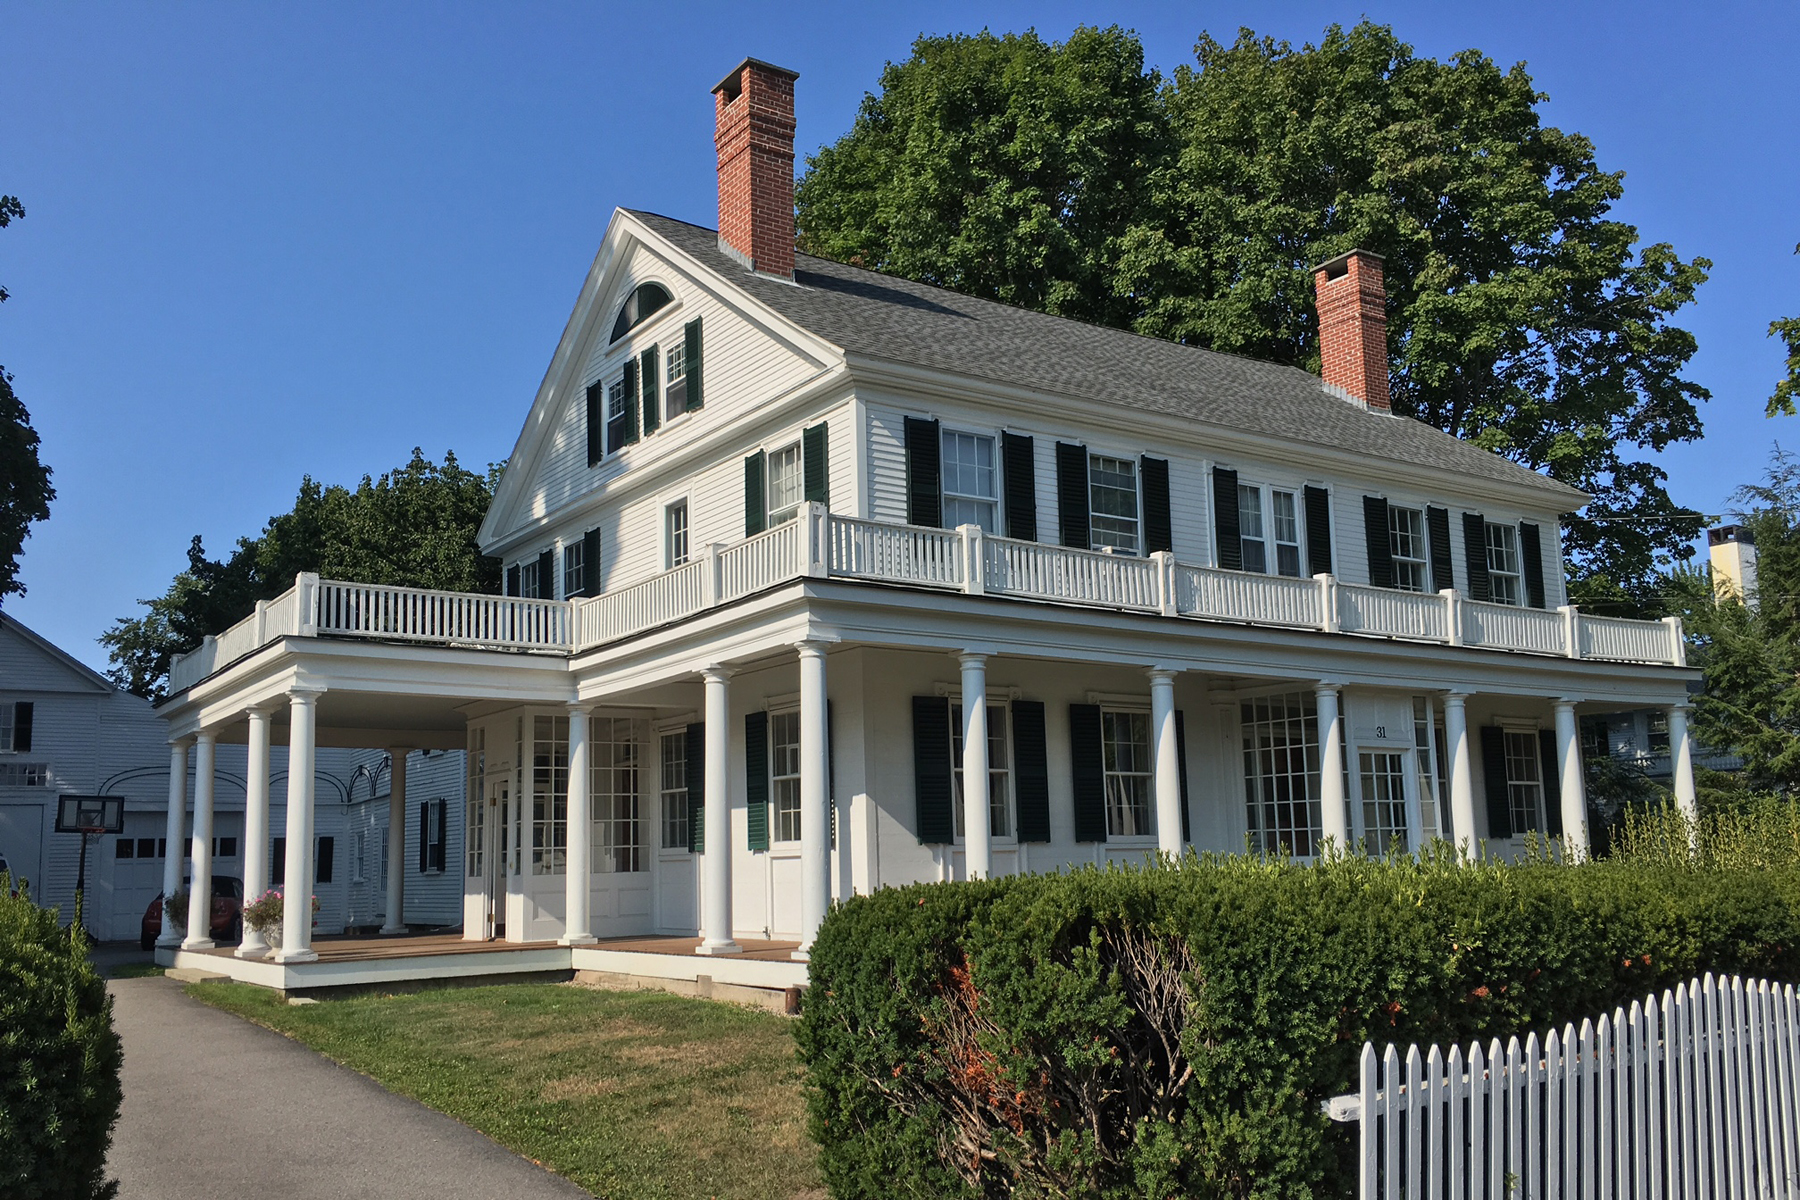 Single Family Home for Sale at Capt Ivory Lord House 31 Summer Street Kennebunk, Maine 04043 United States